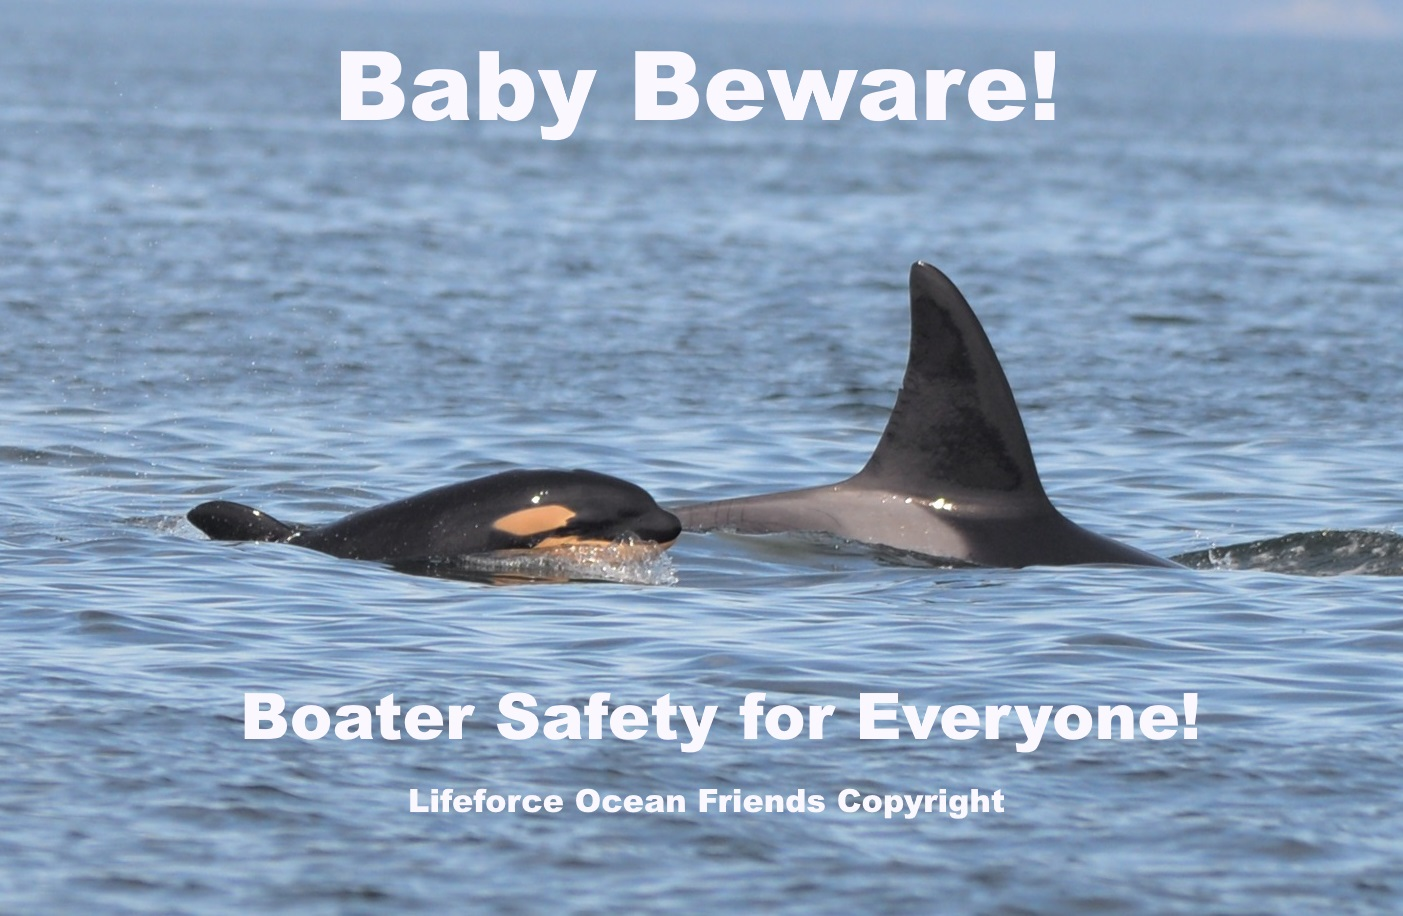 Boating Season Opens: Protect Babies And Boaters